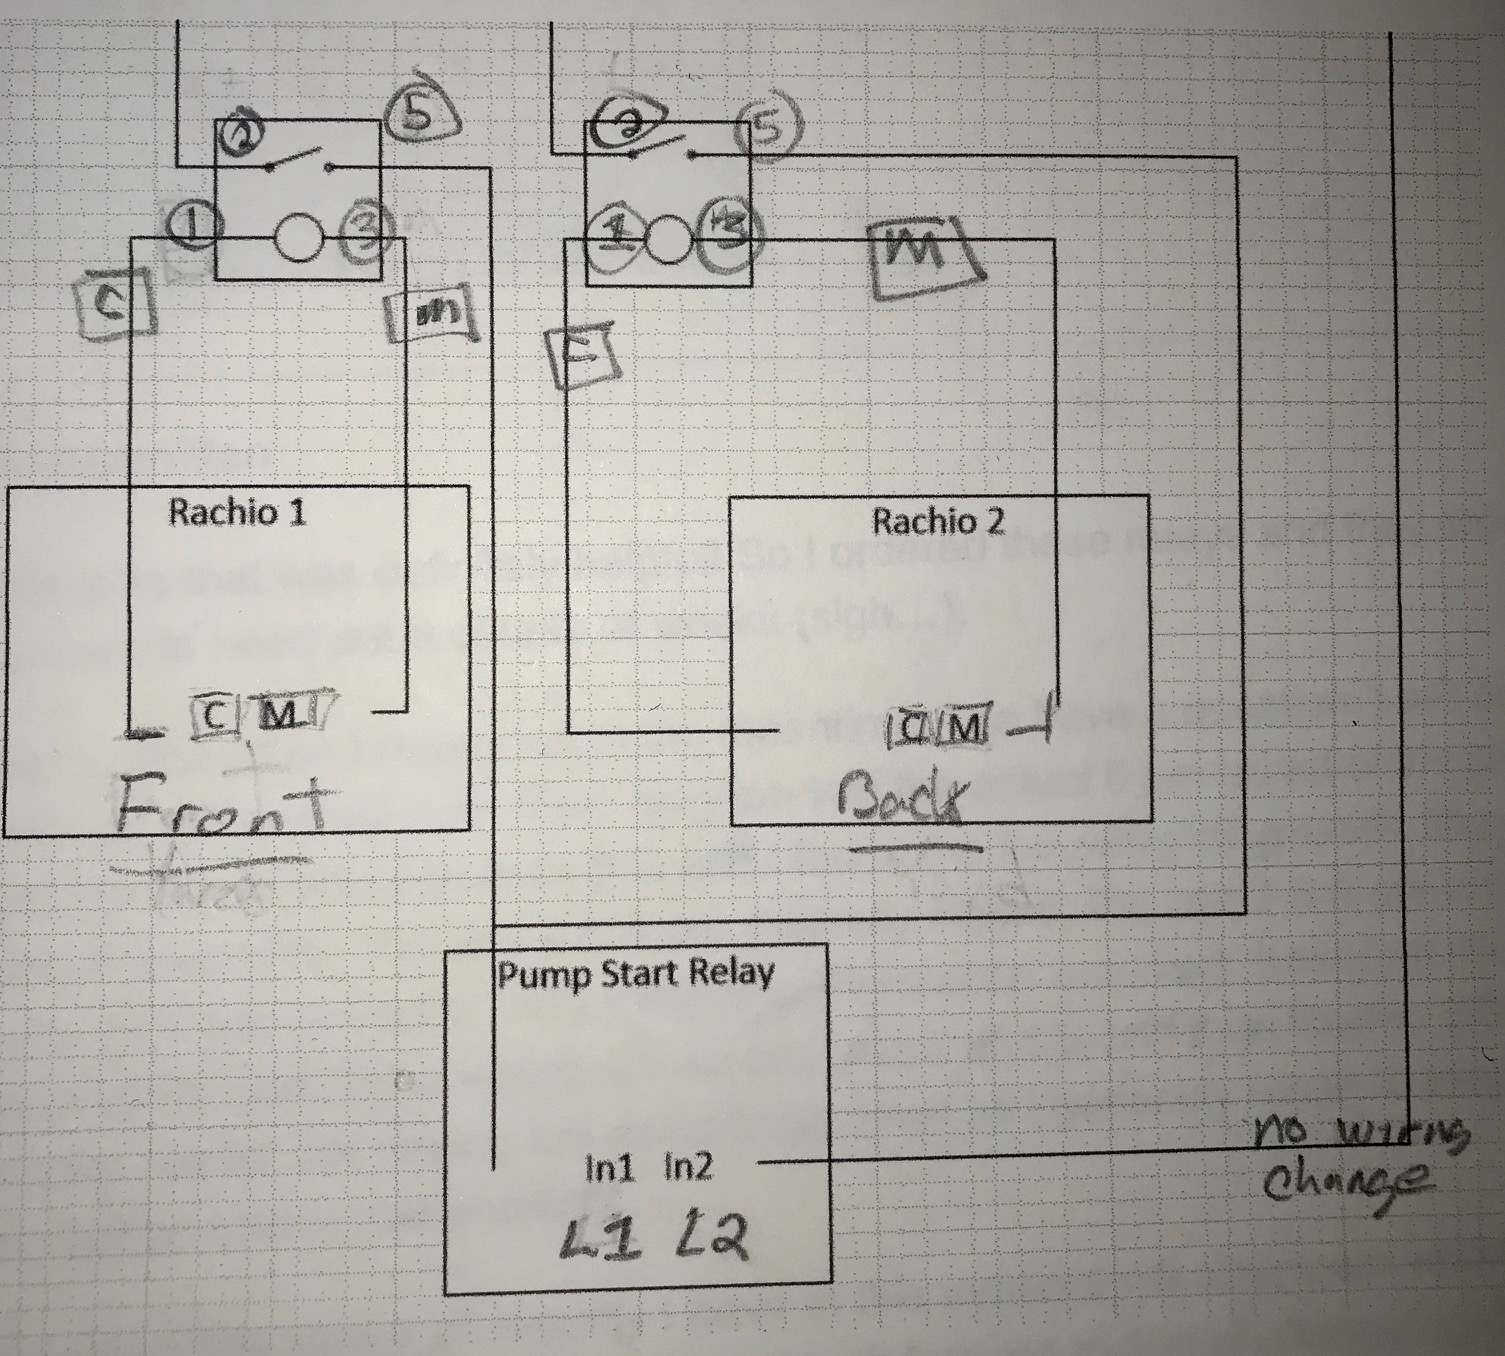 Spdt Relay Wiring Diagram Quotes